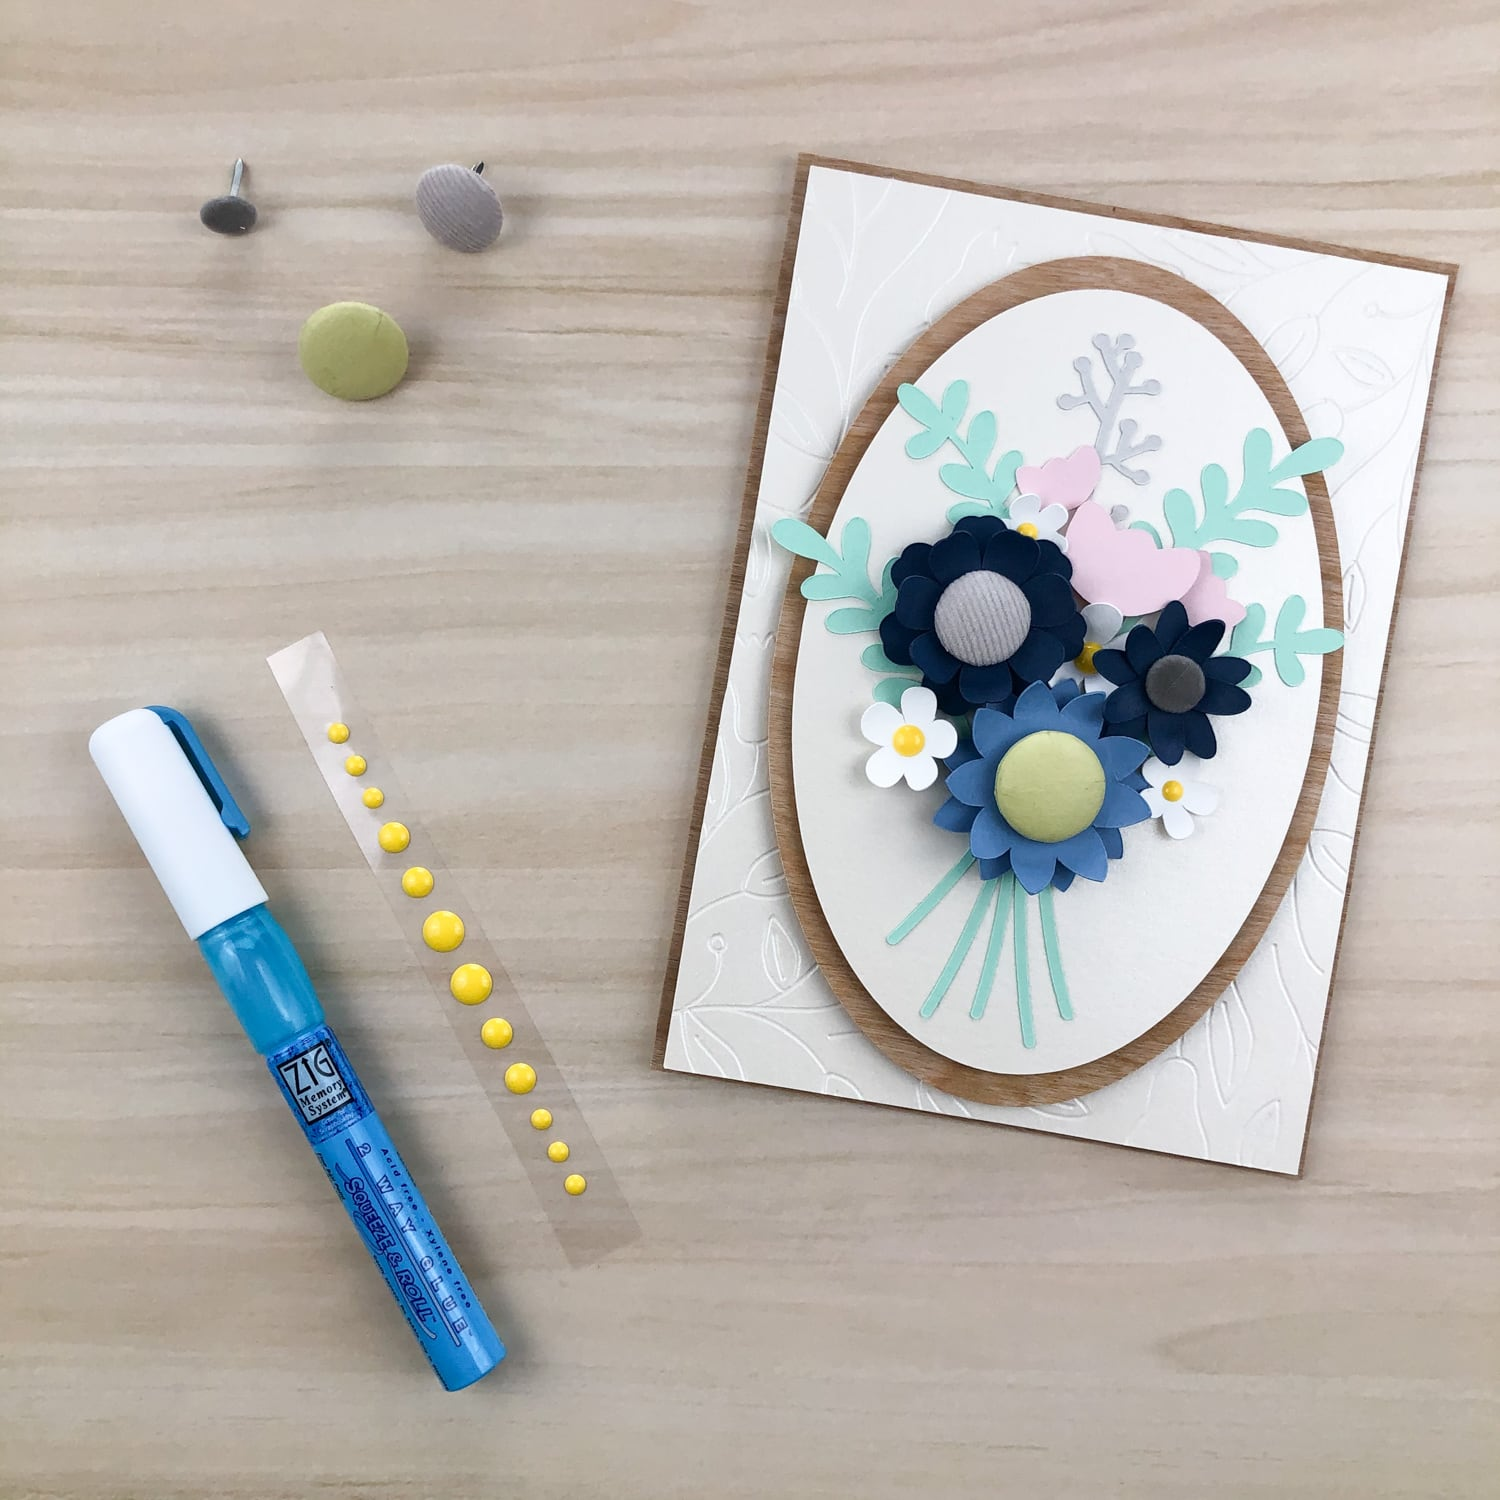 adding brads and enamel dots to centers of paper flowers